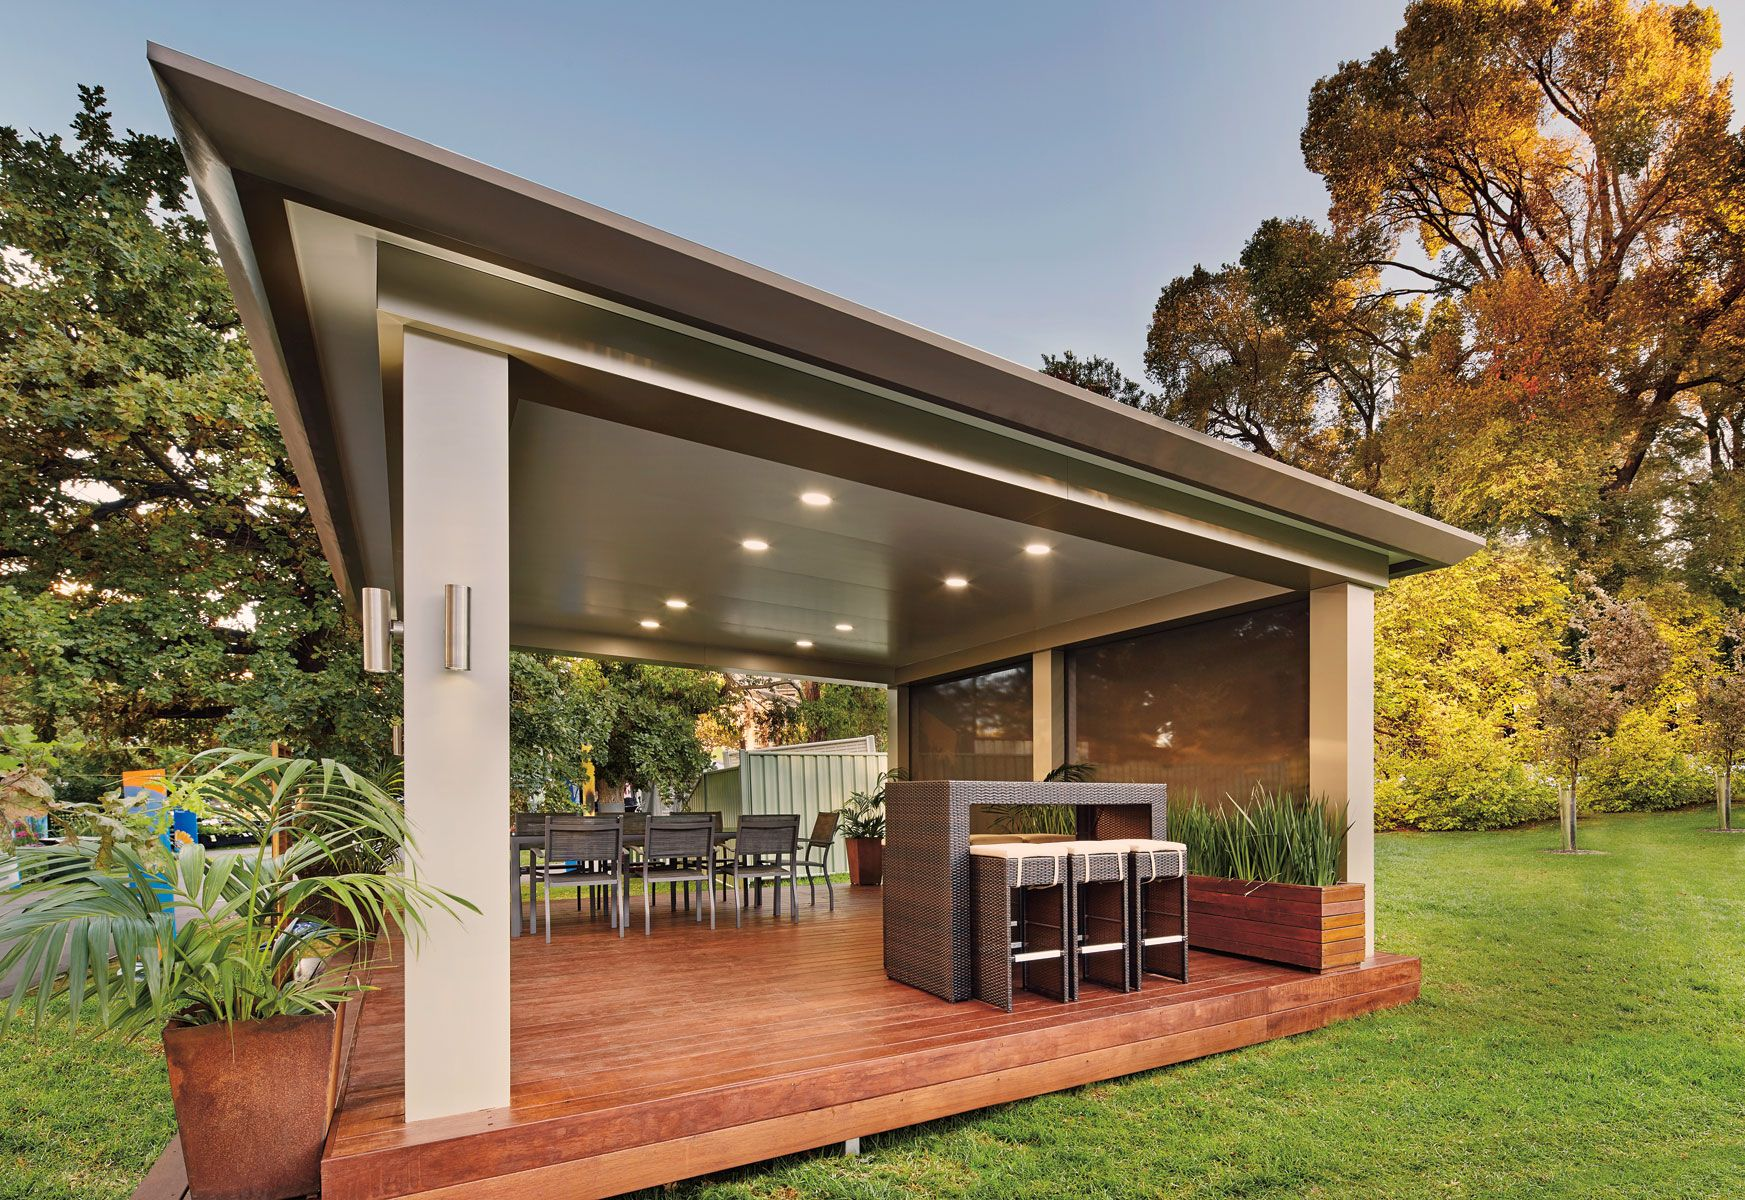 Pavilion - Outdoor Living Patio by Stratco – Architectural